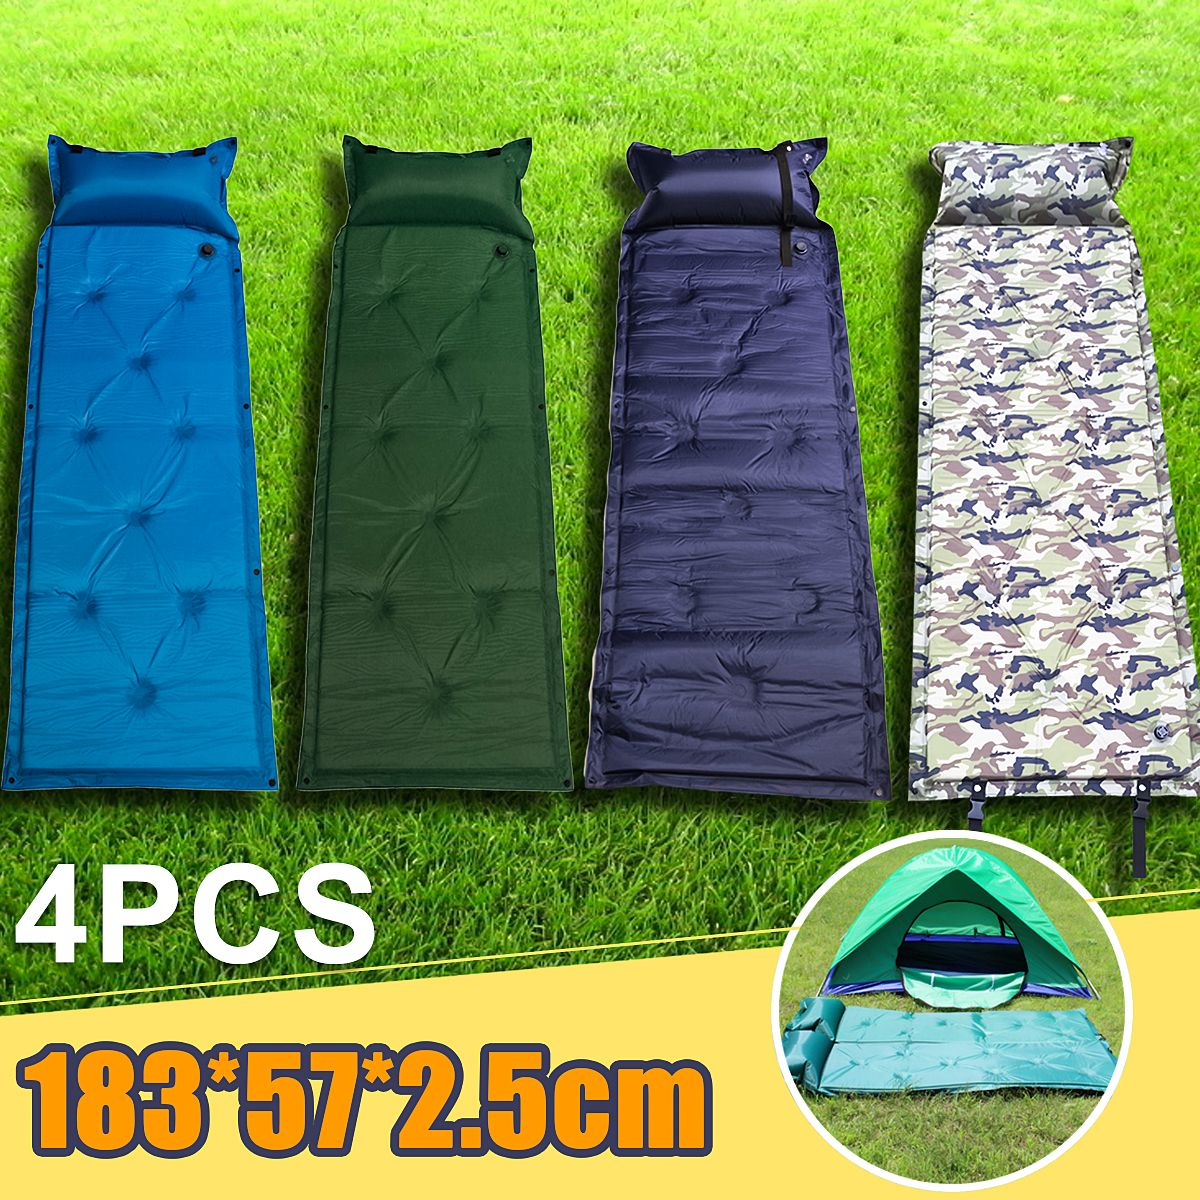 Outdoor Polyester Camping Self Inflating Air Mat Mattress Pad Pillow Waterproof Hiking Sleeping Bed 4 Colors Walmart Com Camping Sleeping Pad Air Mattress Camping Camping Mat